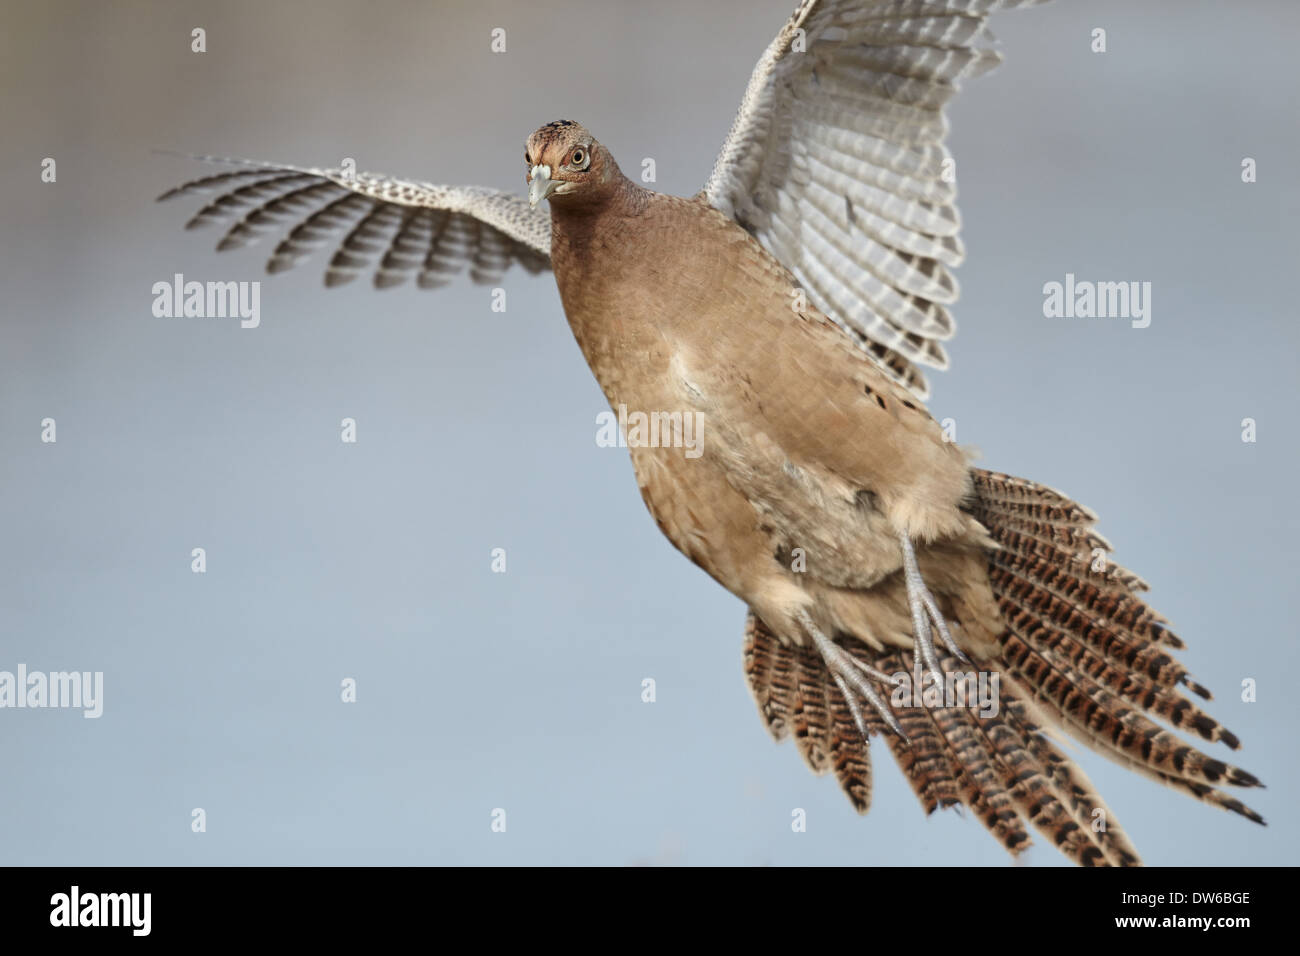 Pheasant Flying Stock Photos & Pheasant Flying Stock Images - Alamy